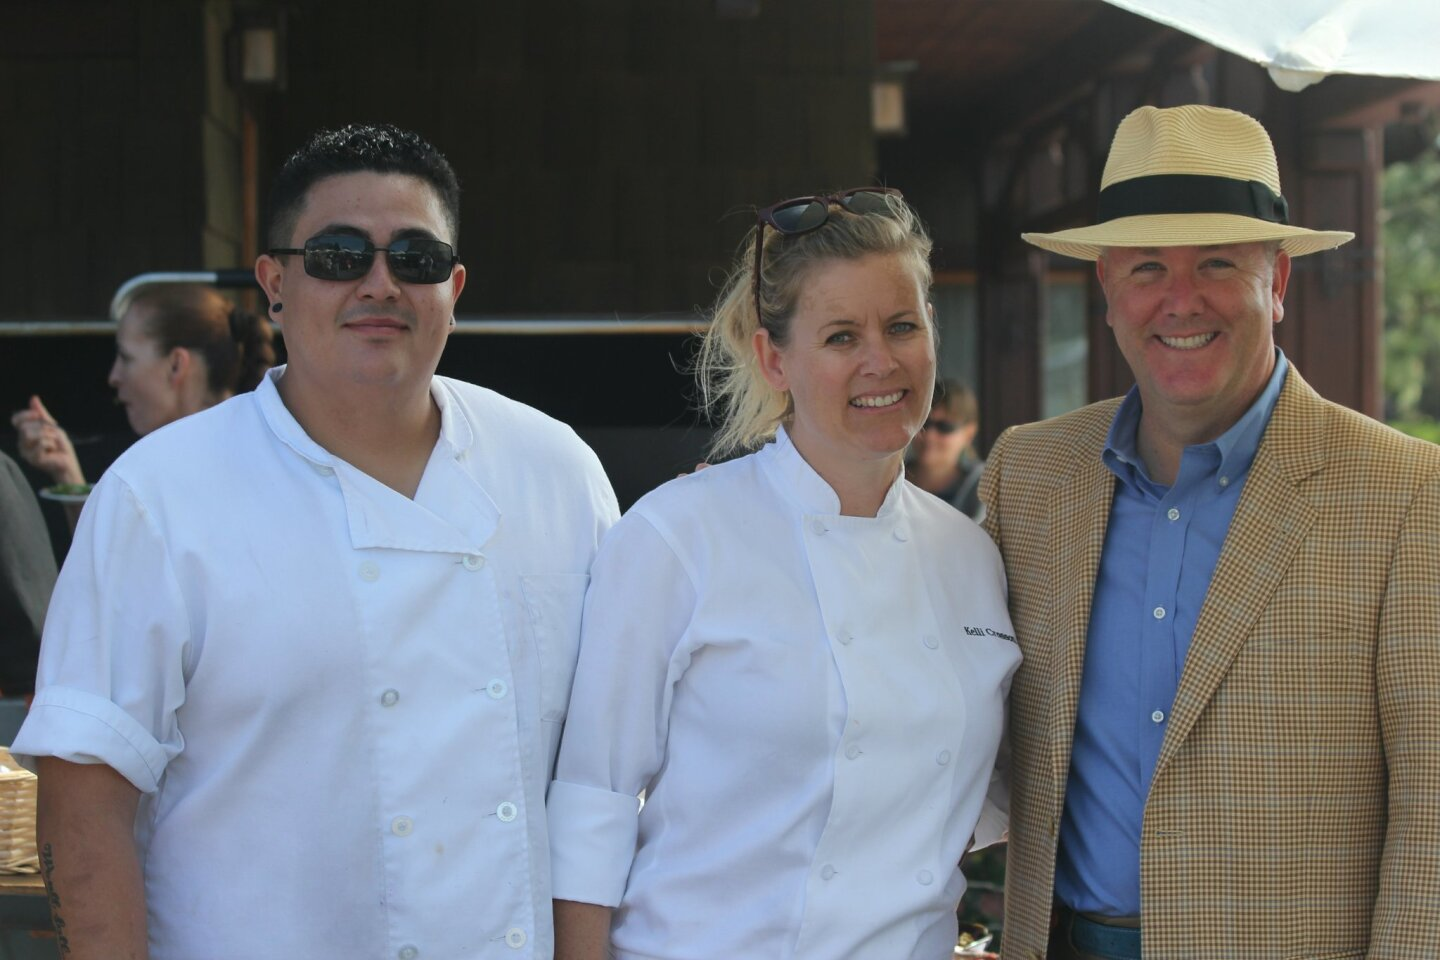 Sous Chef Izzy Sanchez of Leroy's Kitchen and Lounge in Coronado; Chef de Cuisine Kelli Crosson of A.R. Valentien at The Lodge at Torrey Pines; and Robert Gleason, president/CEO of Evans Hotels attend the 12th annual Celebrate the Craft food and wine festival, Oct. 12, 2014 at The Lodge at Torrey Pines in La Jolla.